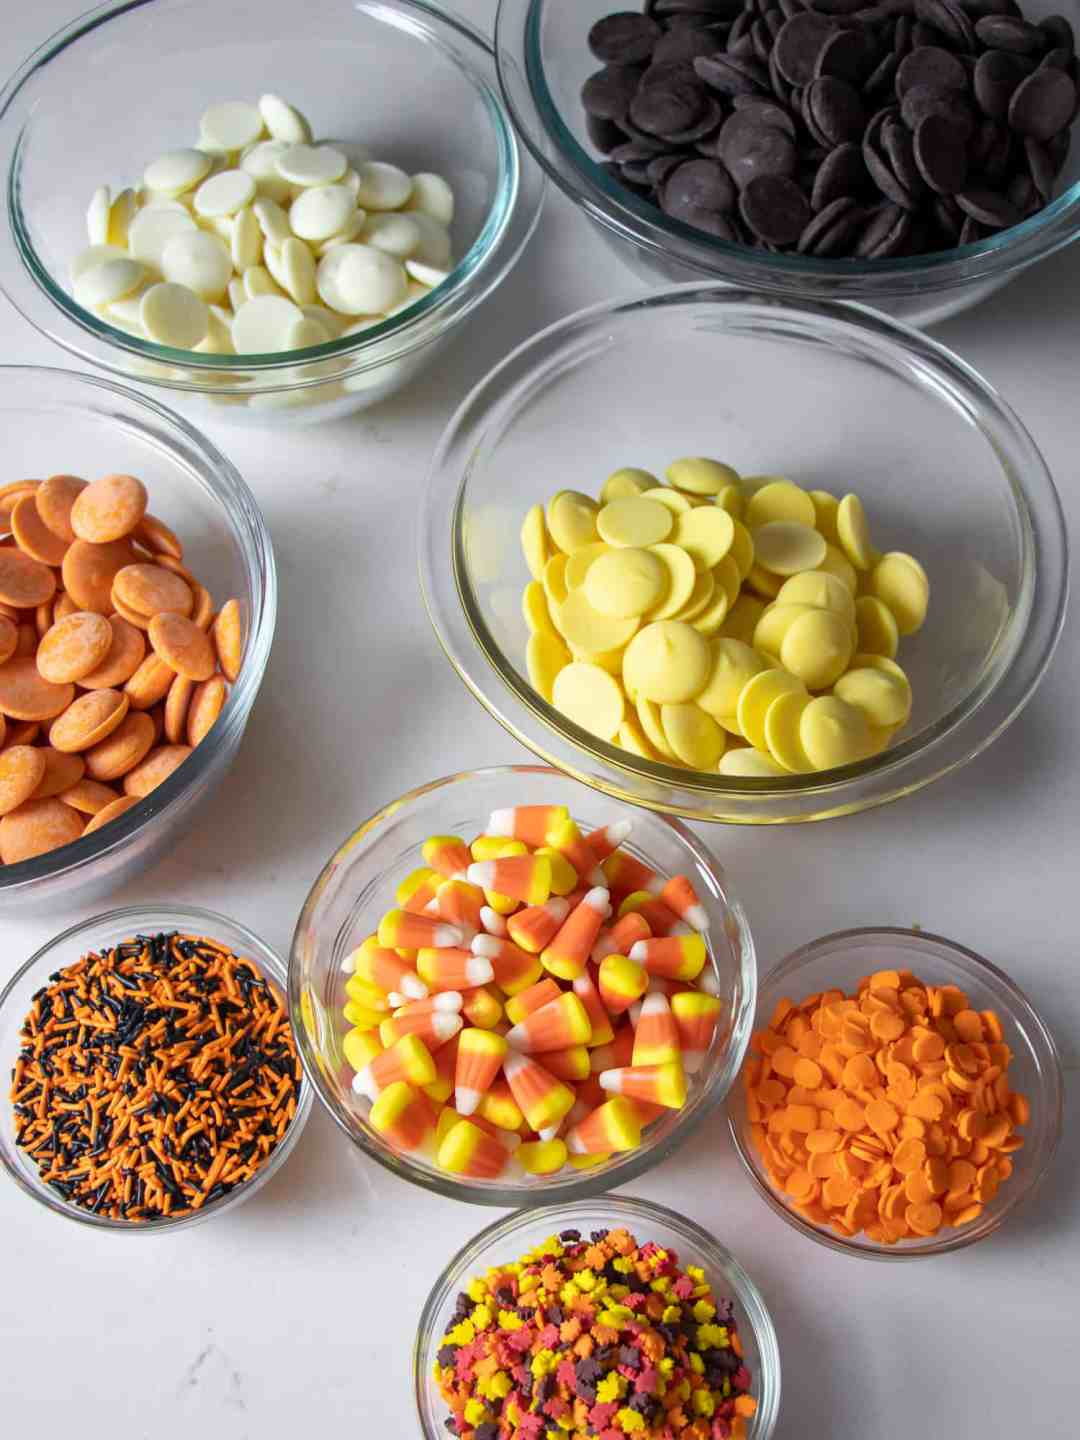 Overhead picture of bowls filled with ingredients of chocolate, sprinkles and candy corn.